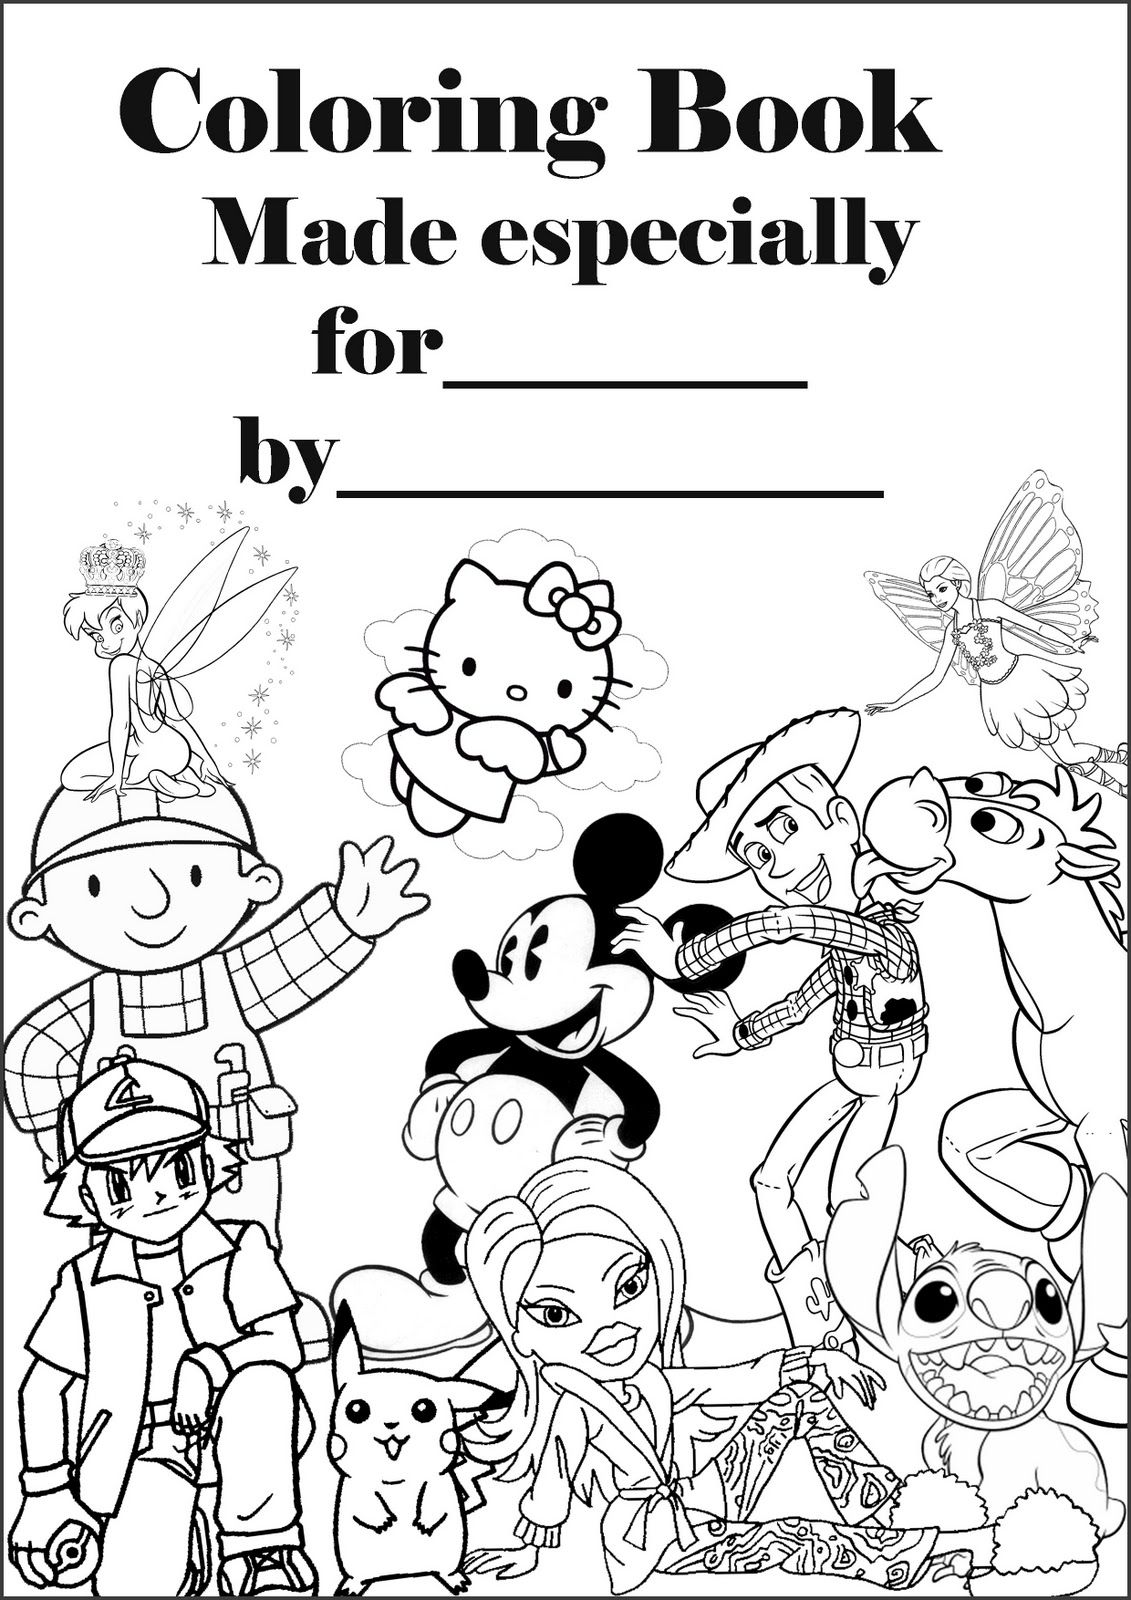 Xmas Coloring Pages Personalized Coloring Book Coloring Books Fairy Coloring Pages